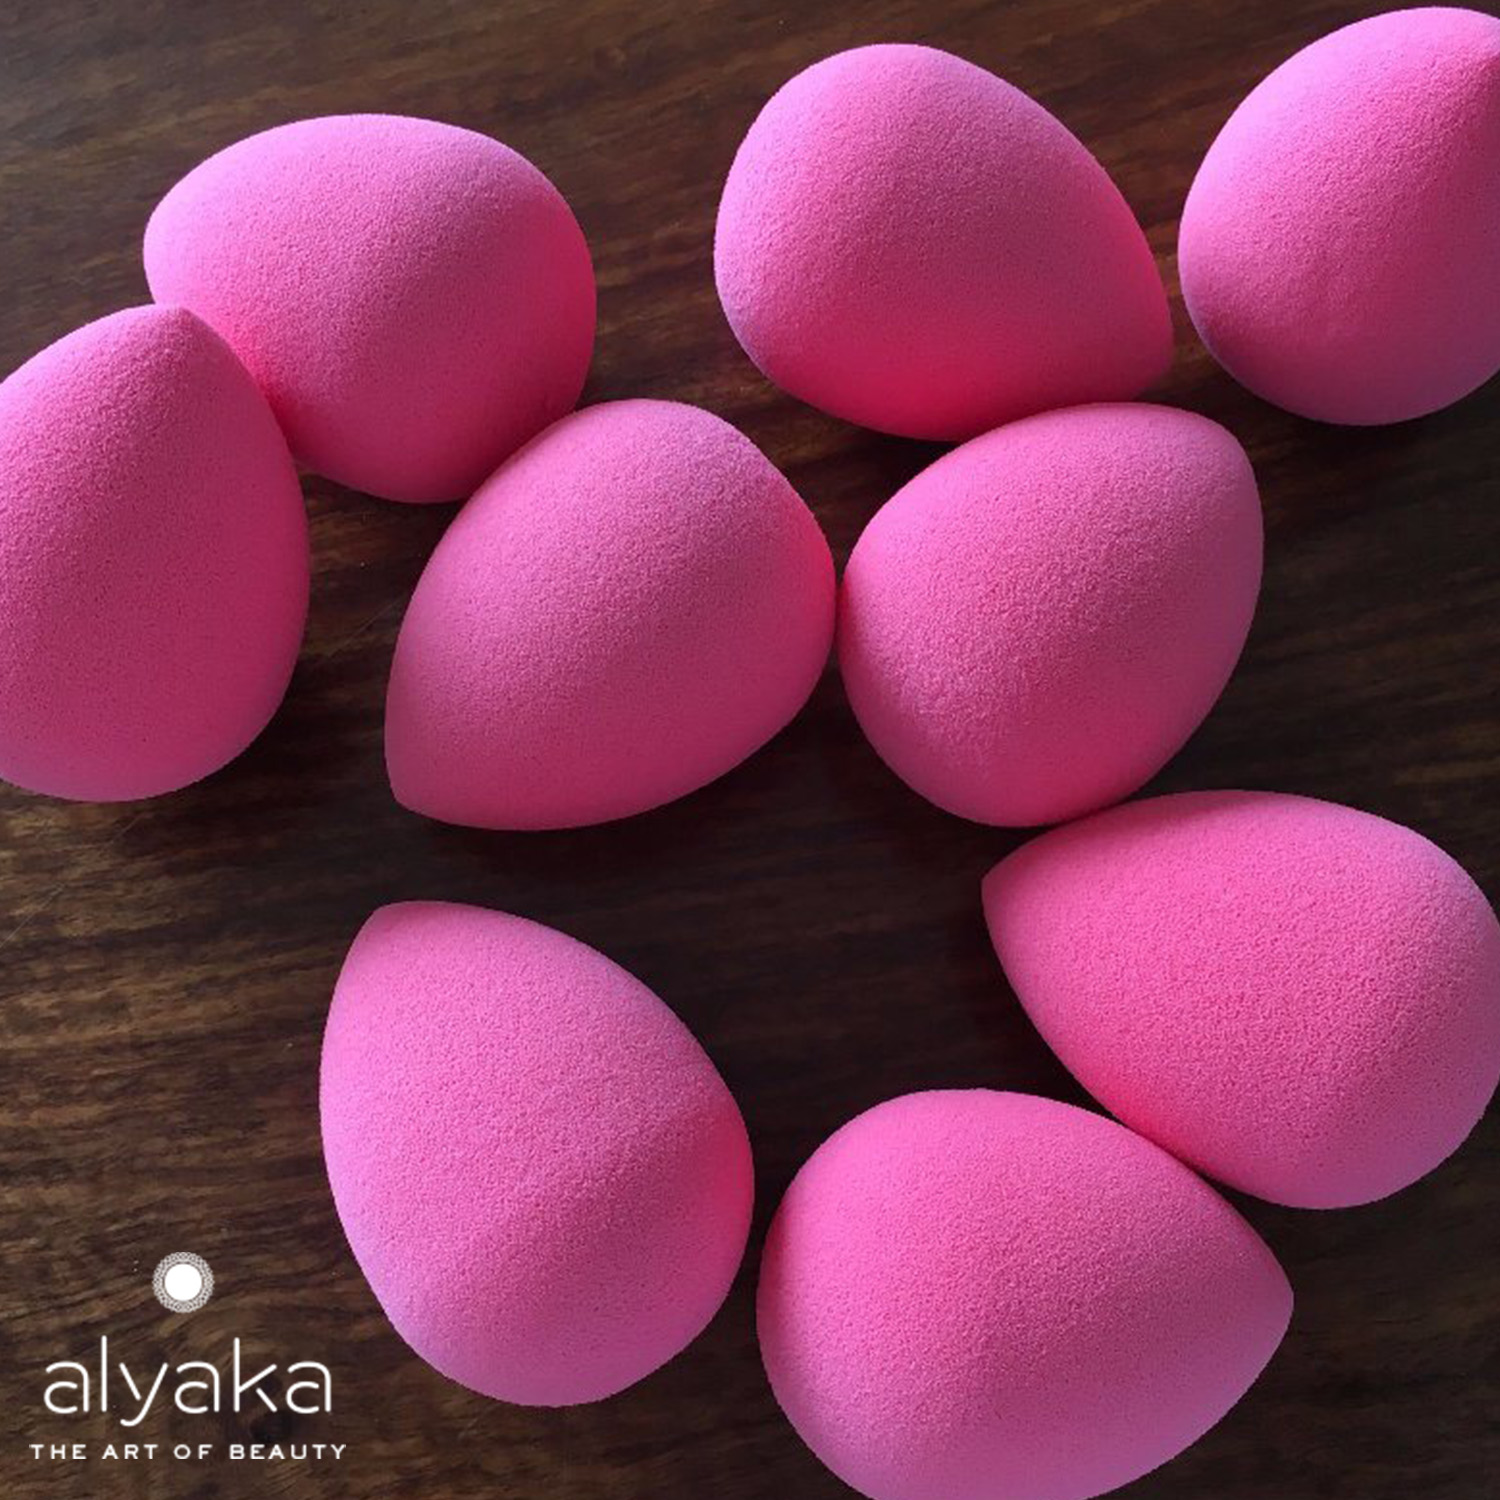 Egg-like Makeup Sponges